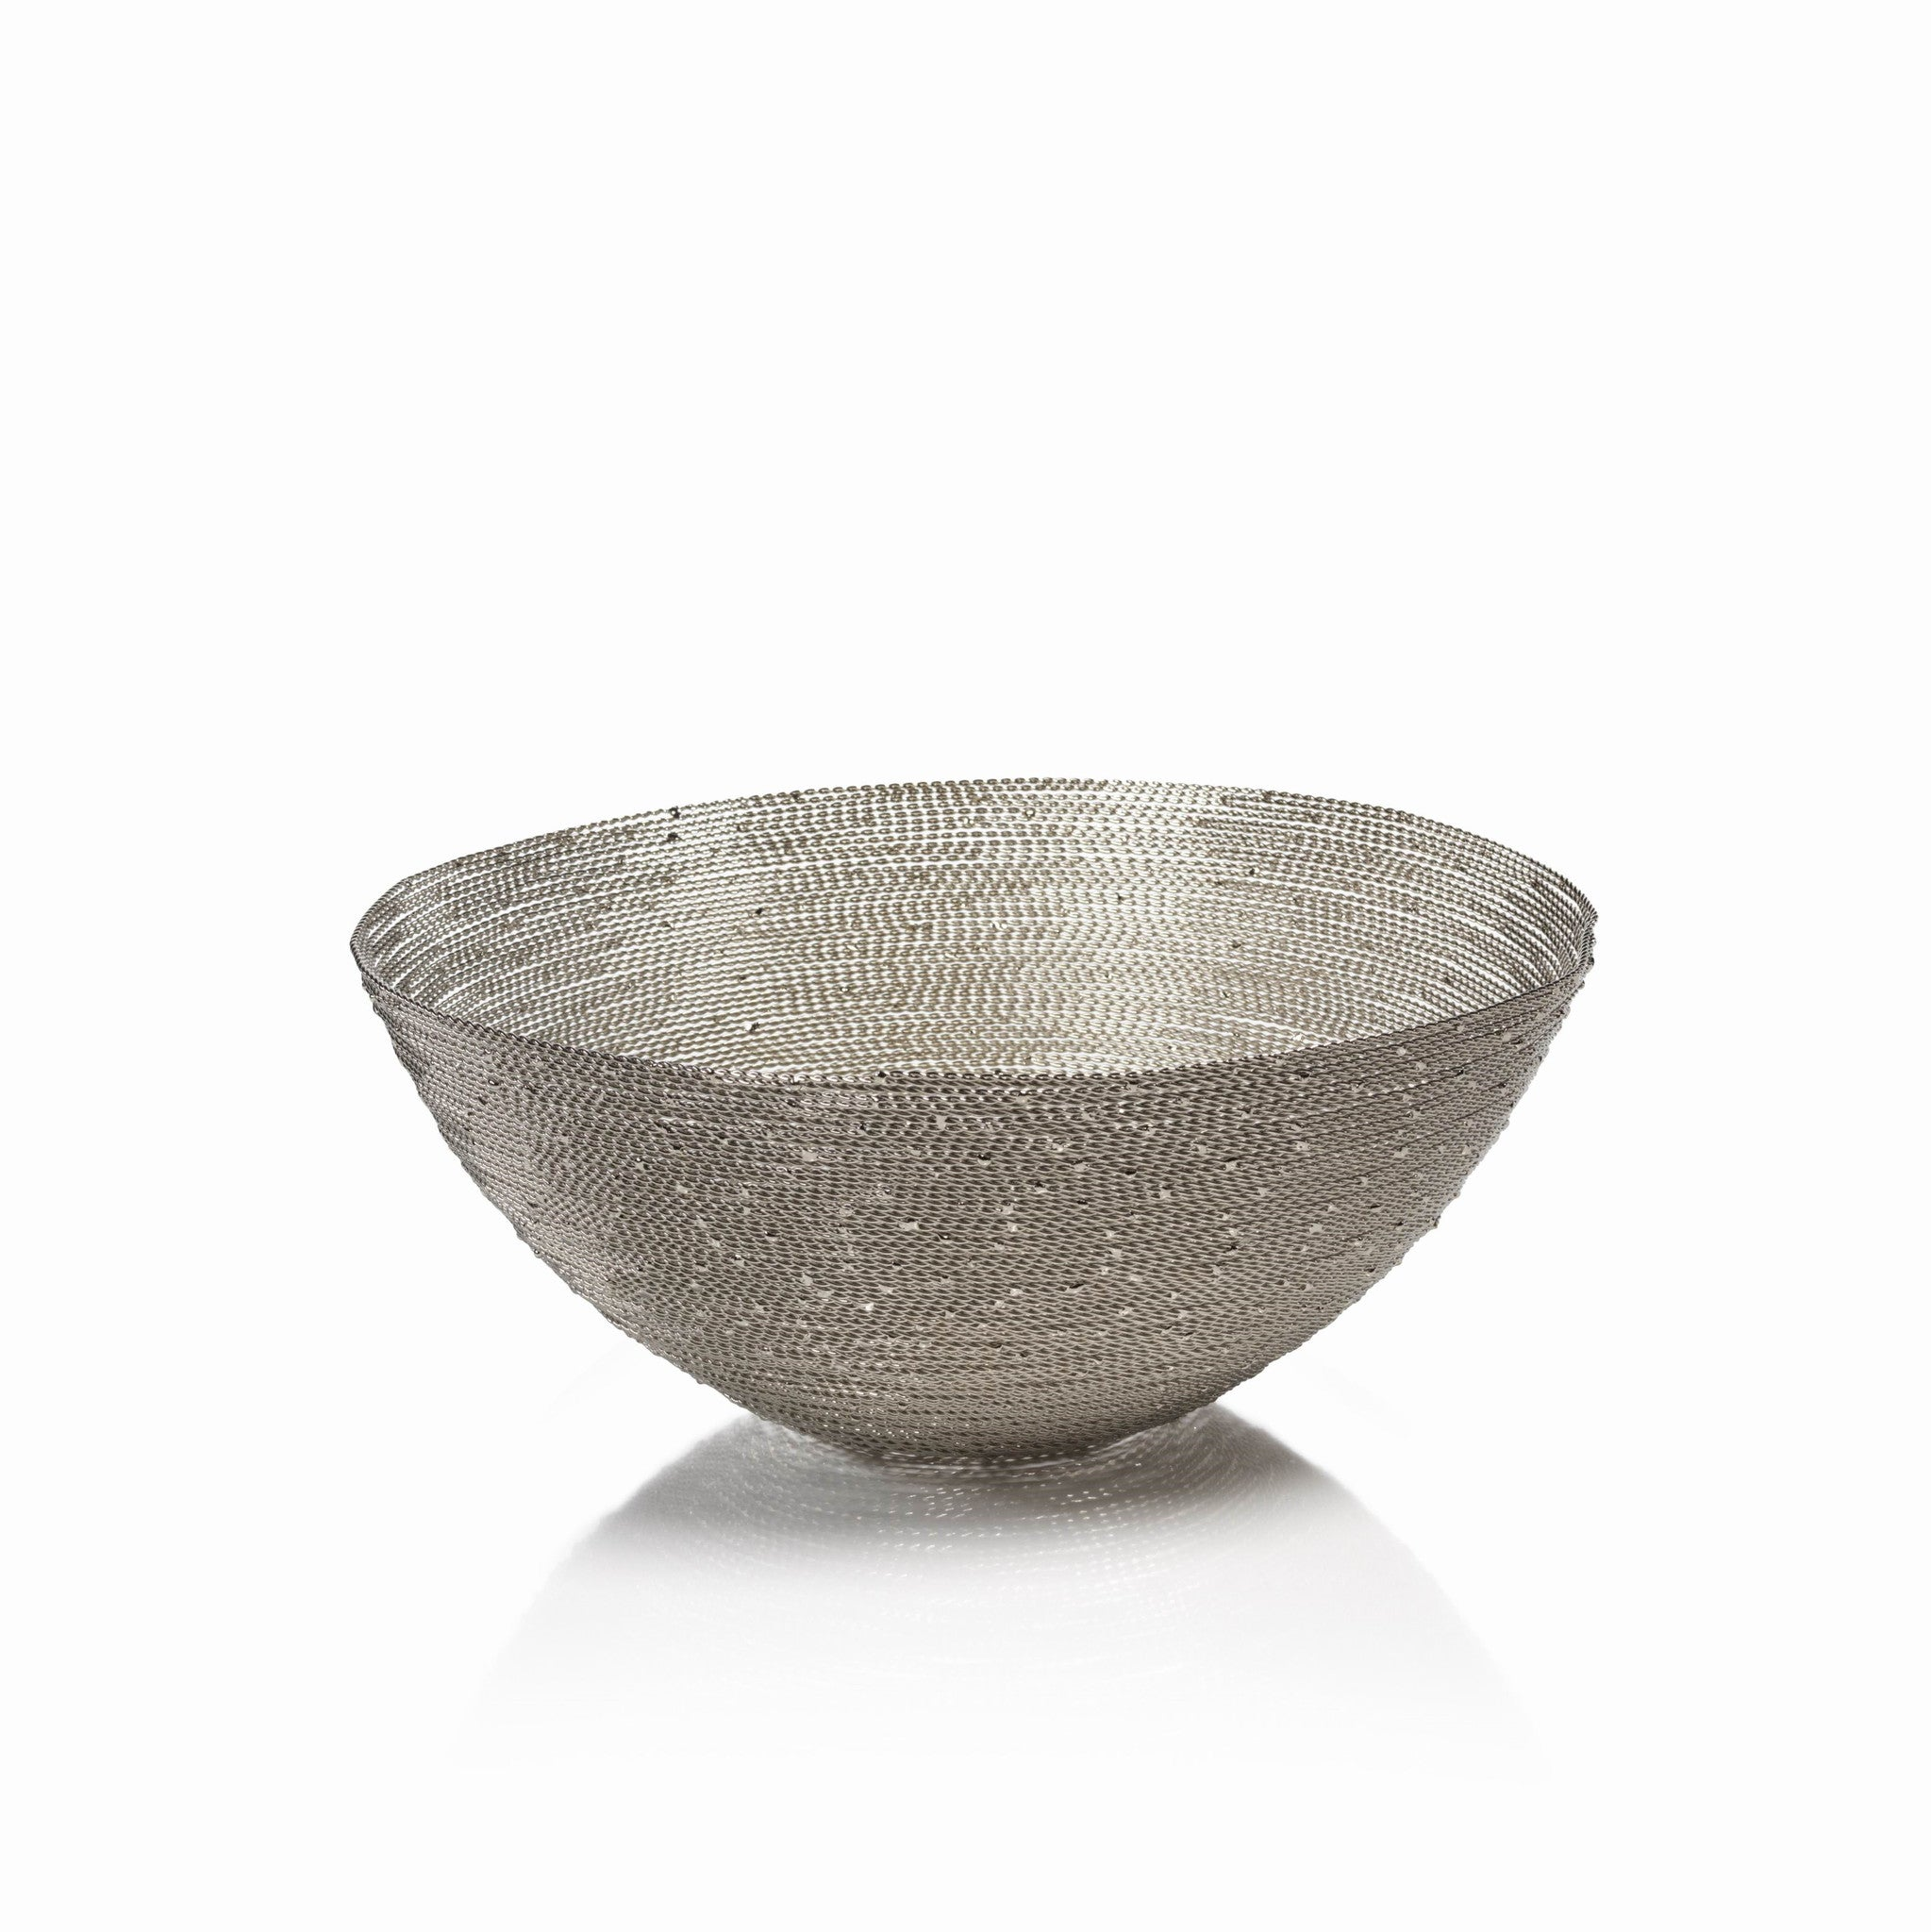 Zulu Woven Wire Basket - Round / Small - CARLYLE AVENUE - 2